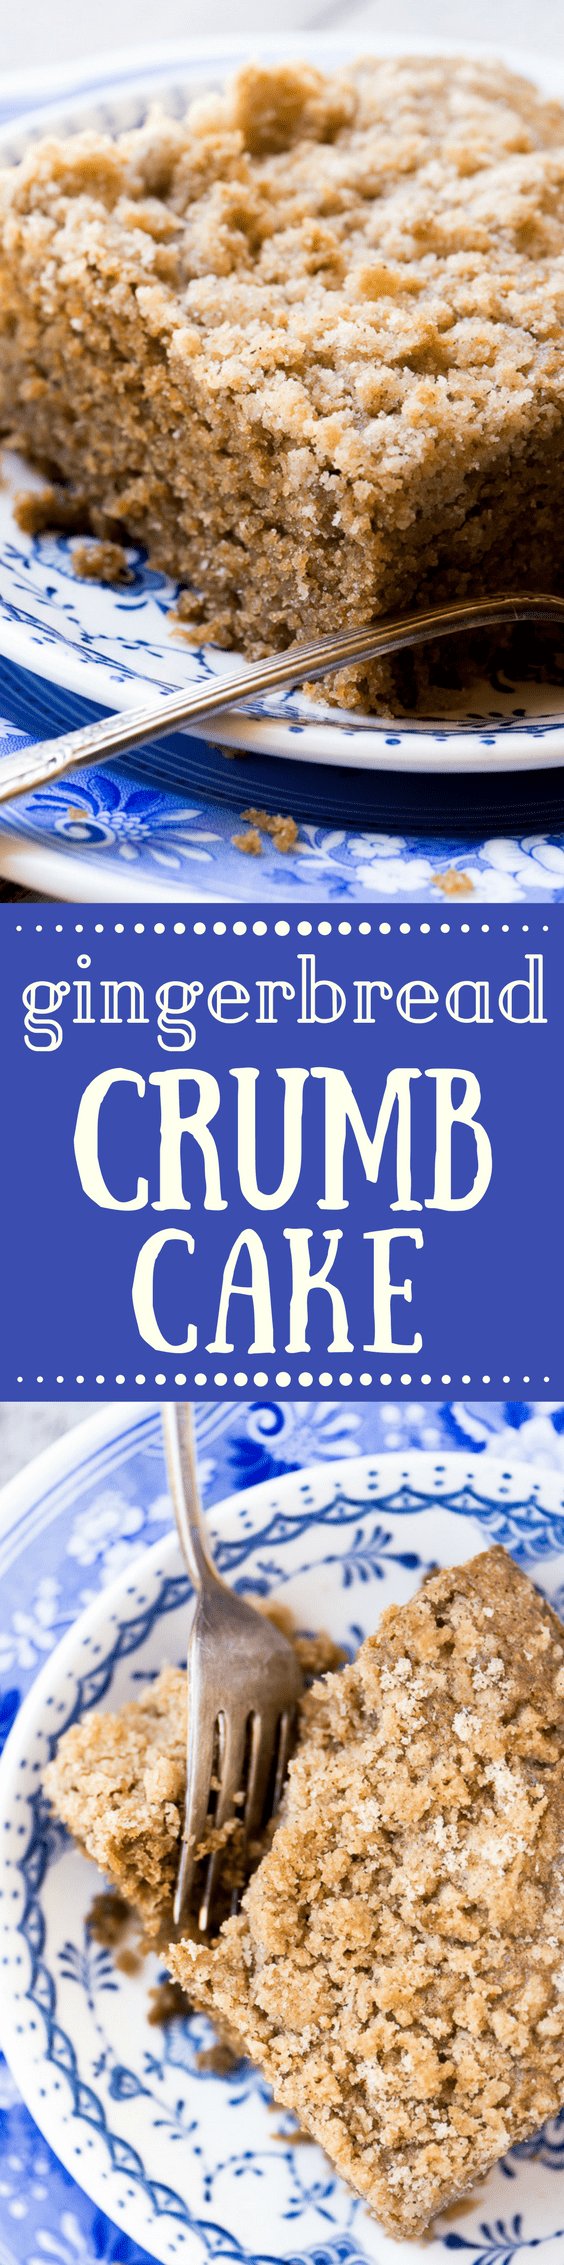 Gingerbread Crumb Cake is a warm spiced coffee cake made super moist and tender with molasses and sour cream ~ it's the perfect way to start a chilly morning, or treat your overnight guests during the holidays! #cake #gingerbread #bestcoffeecake #coffeecake #snackcake #spicecake #gingerbreadrecipe #holidaybreakfast #coffeecakerecipe